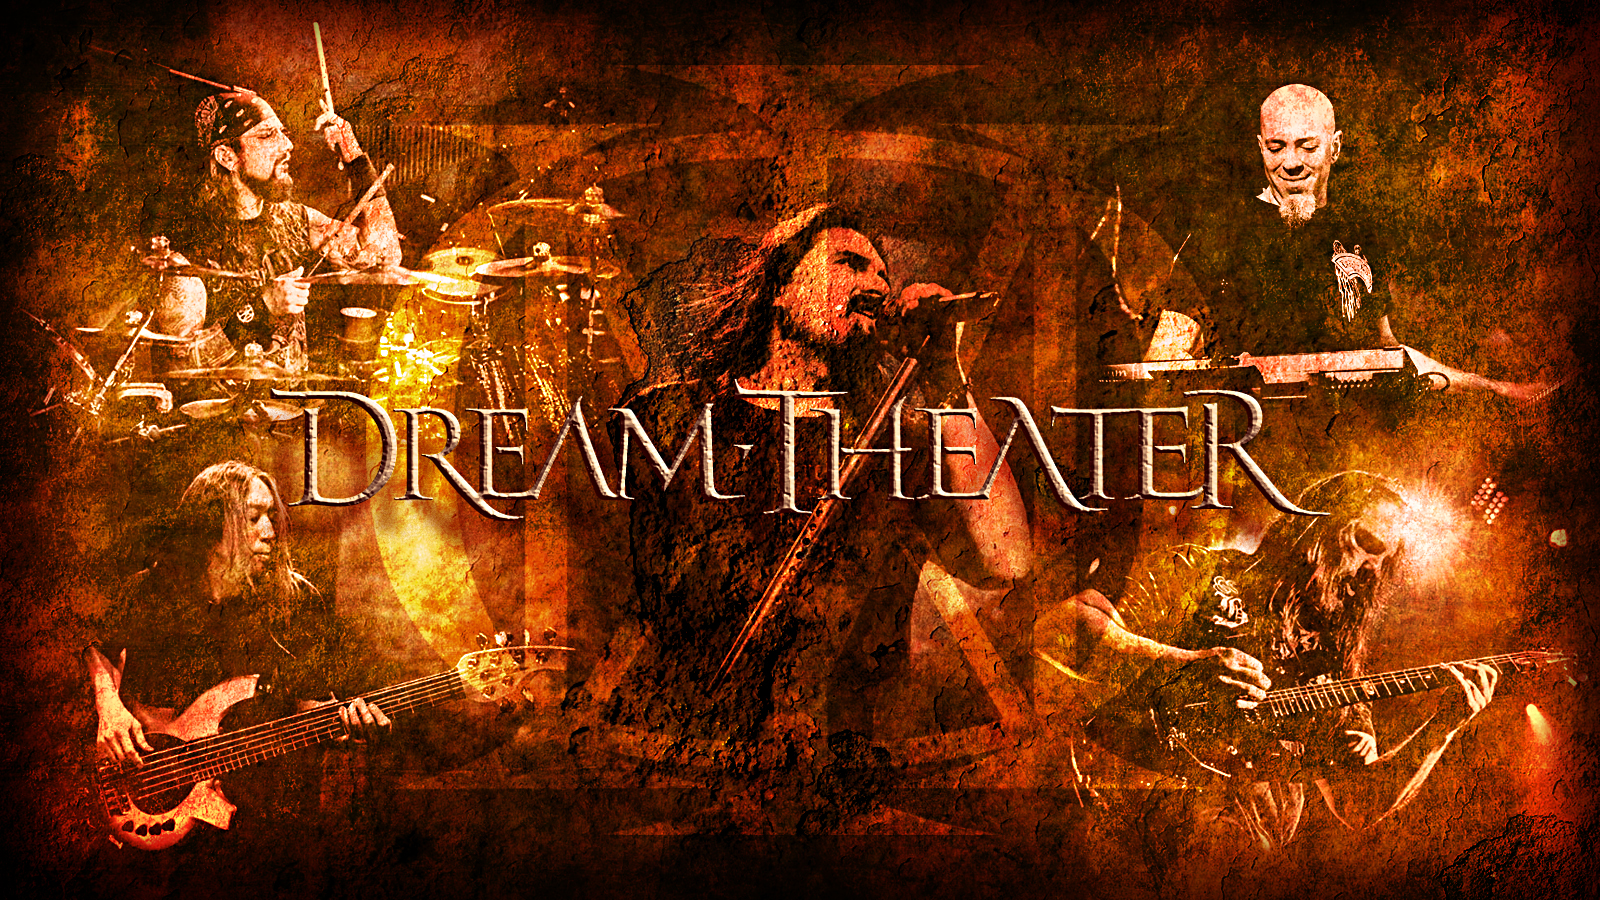 Dream Theater Wallpaper and Background Image | 1600x900 ...